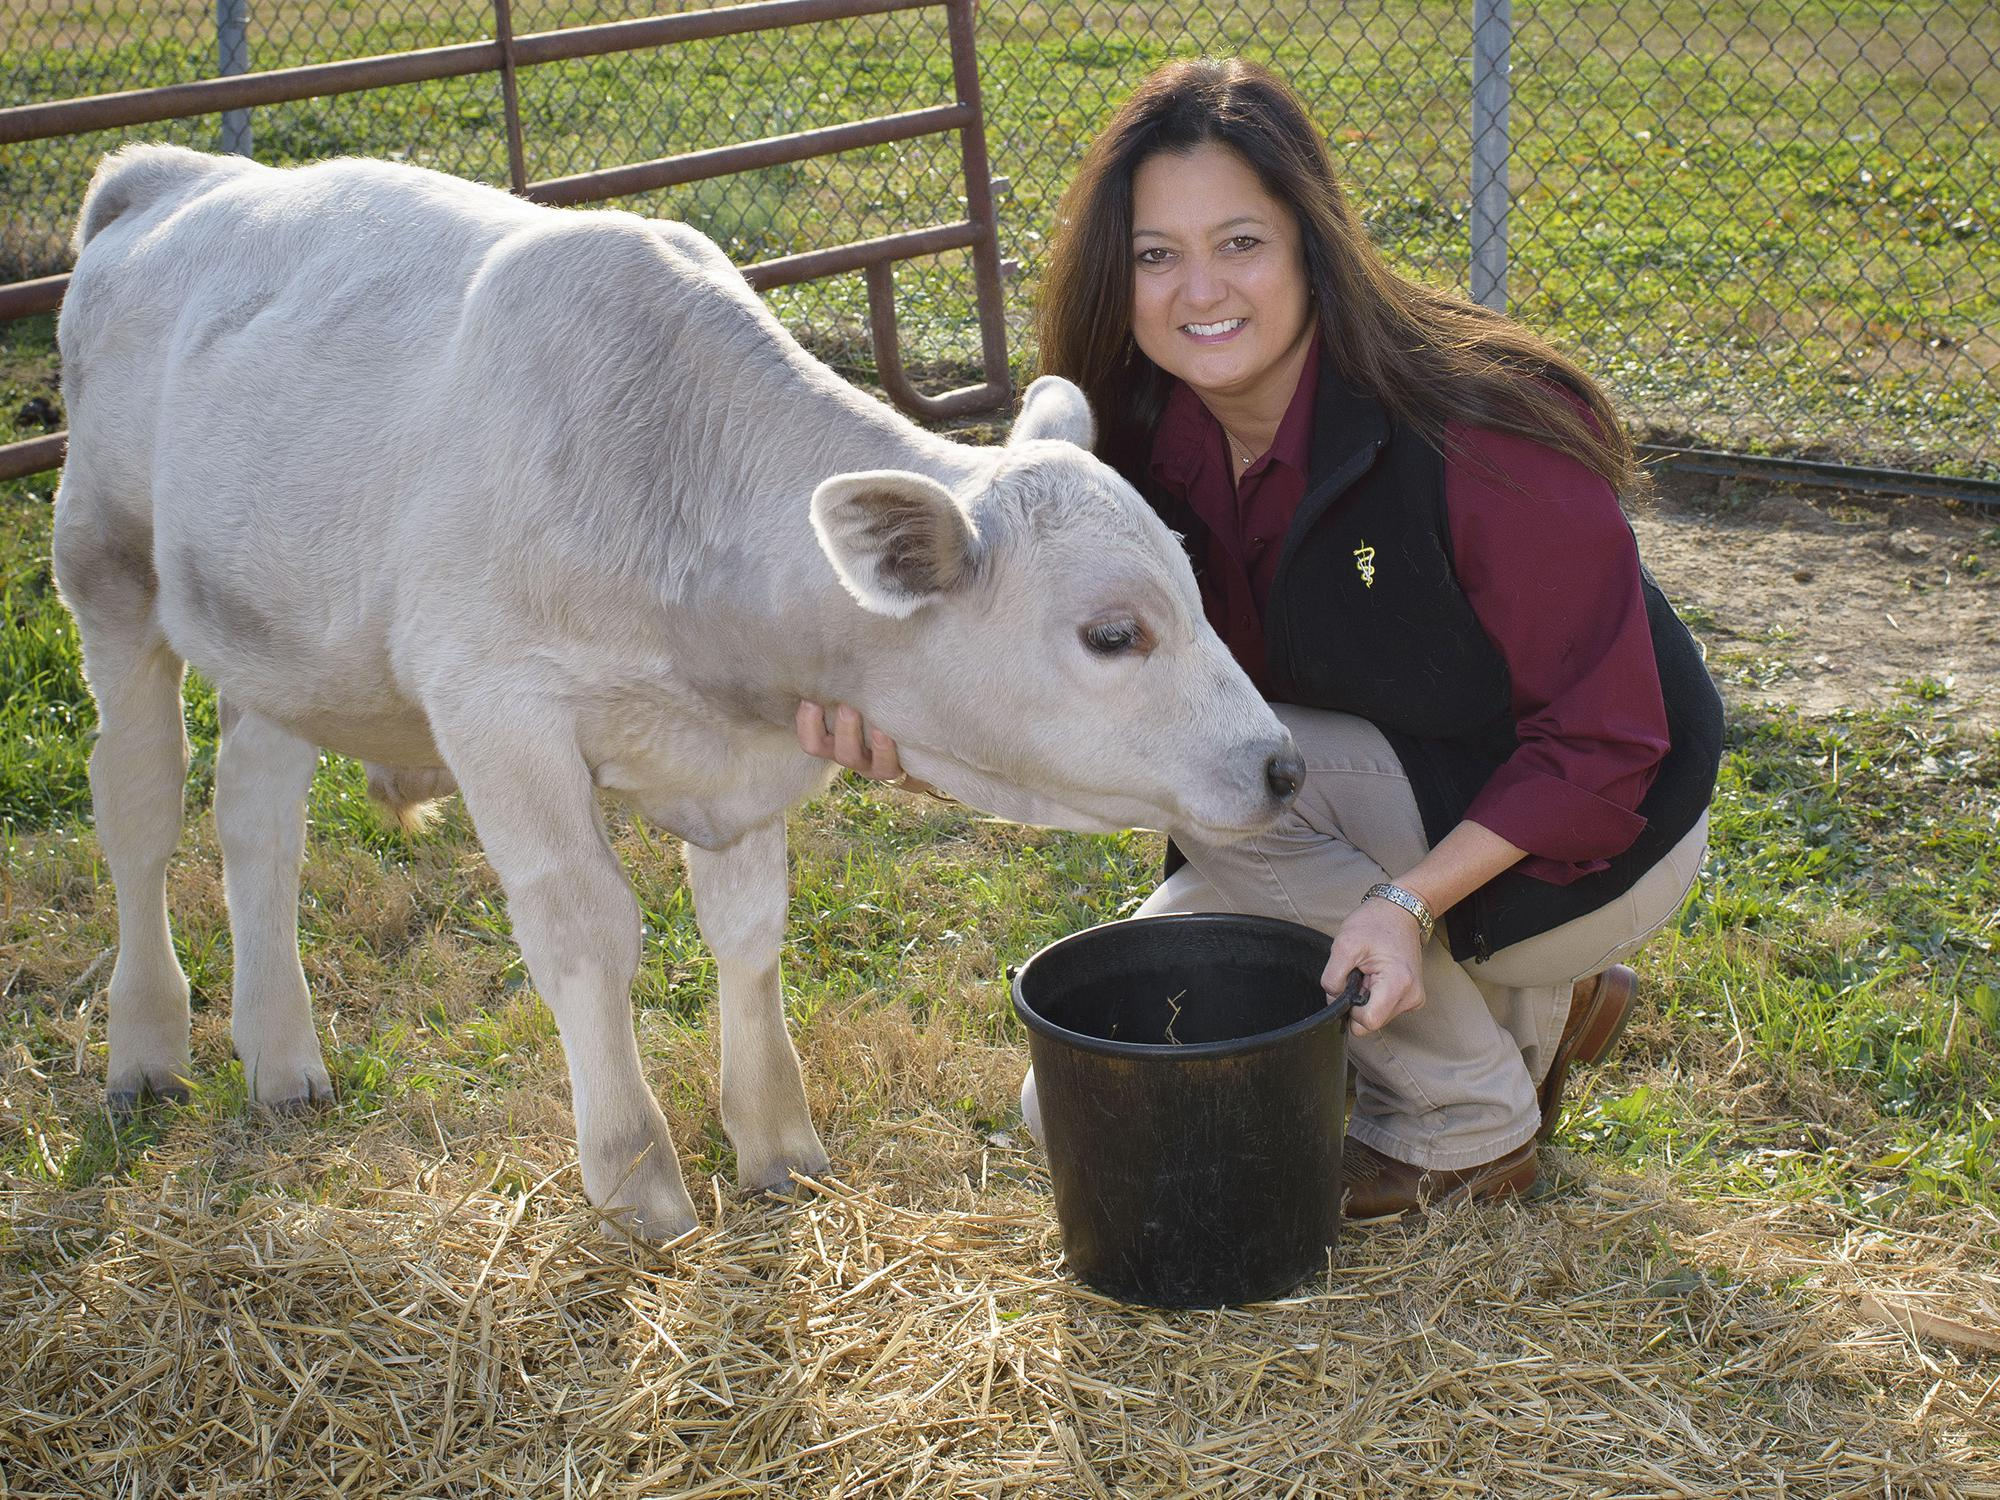 Woman inside a gate in a pasture feeding a white cow.